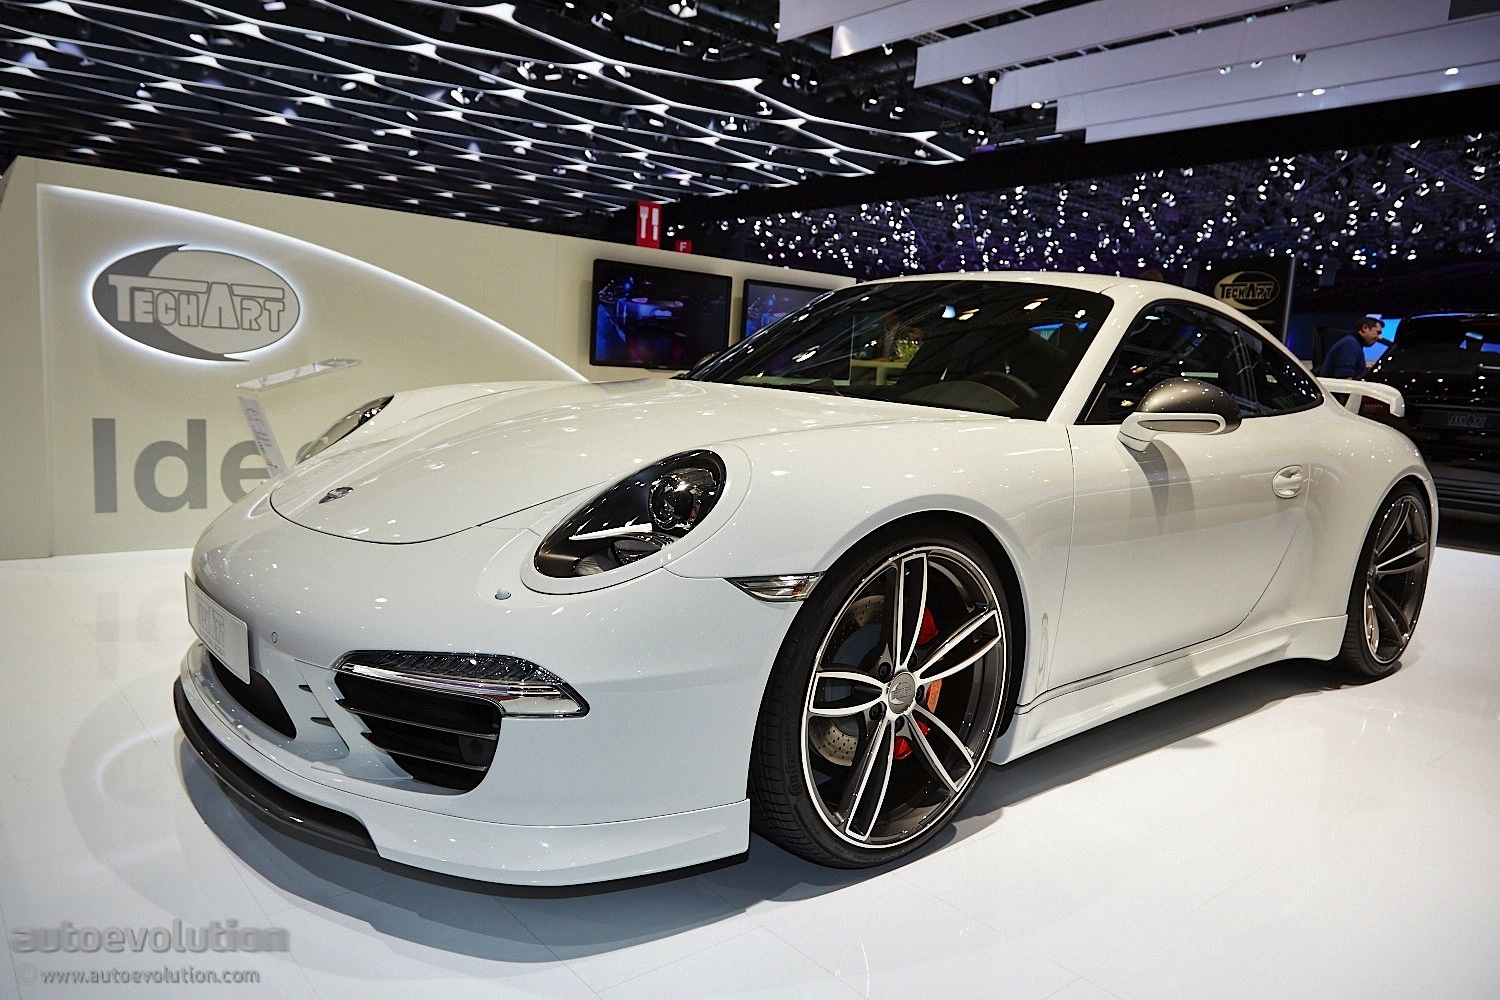 Techart Presents Modified Porsche 911 Turbo S In Geneva